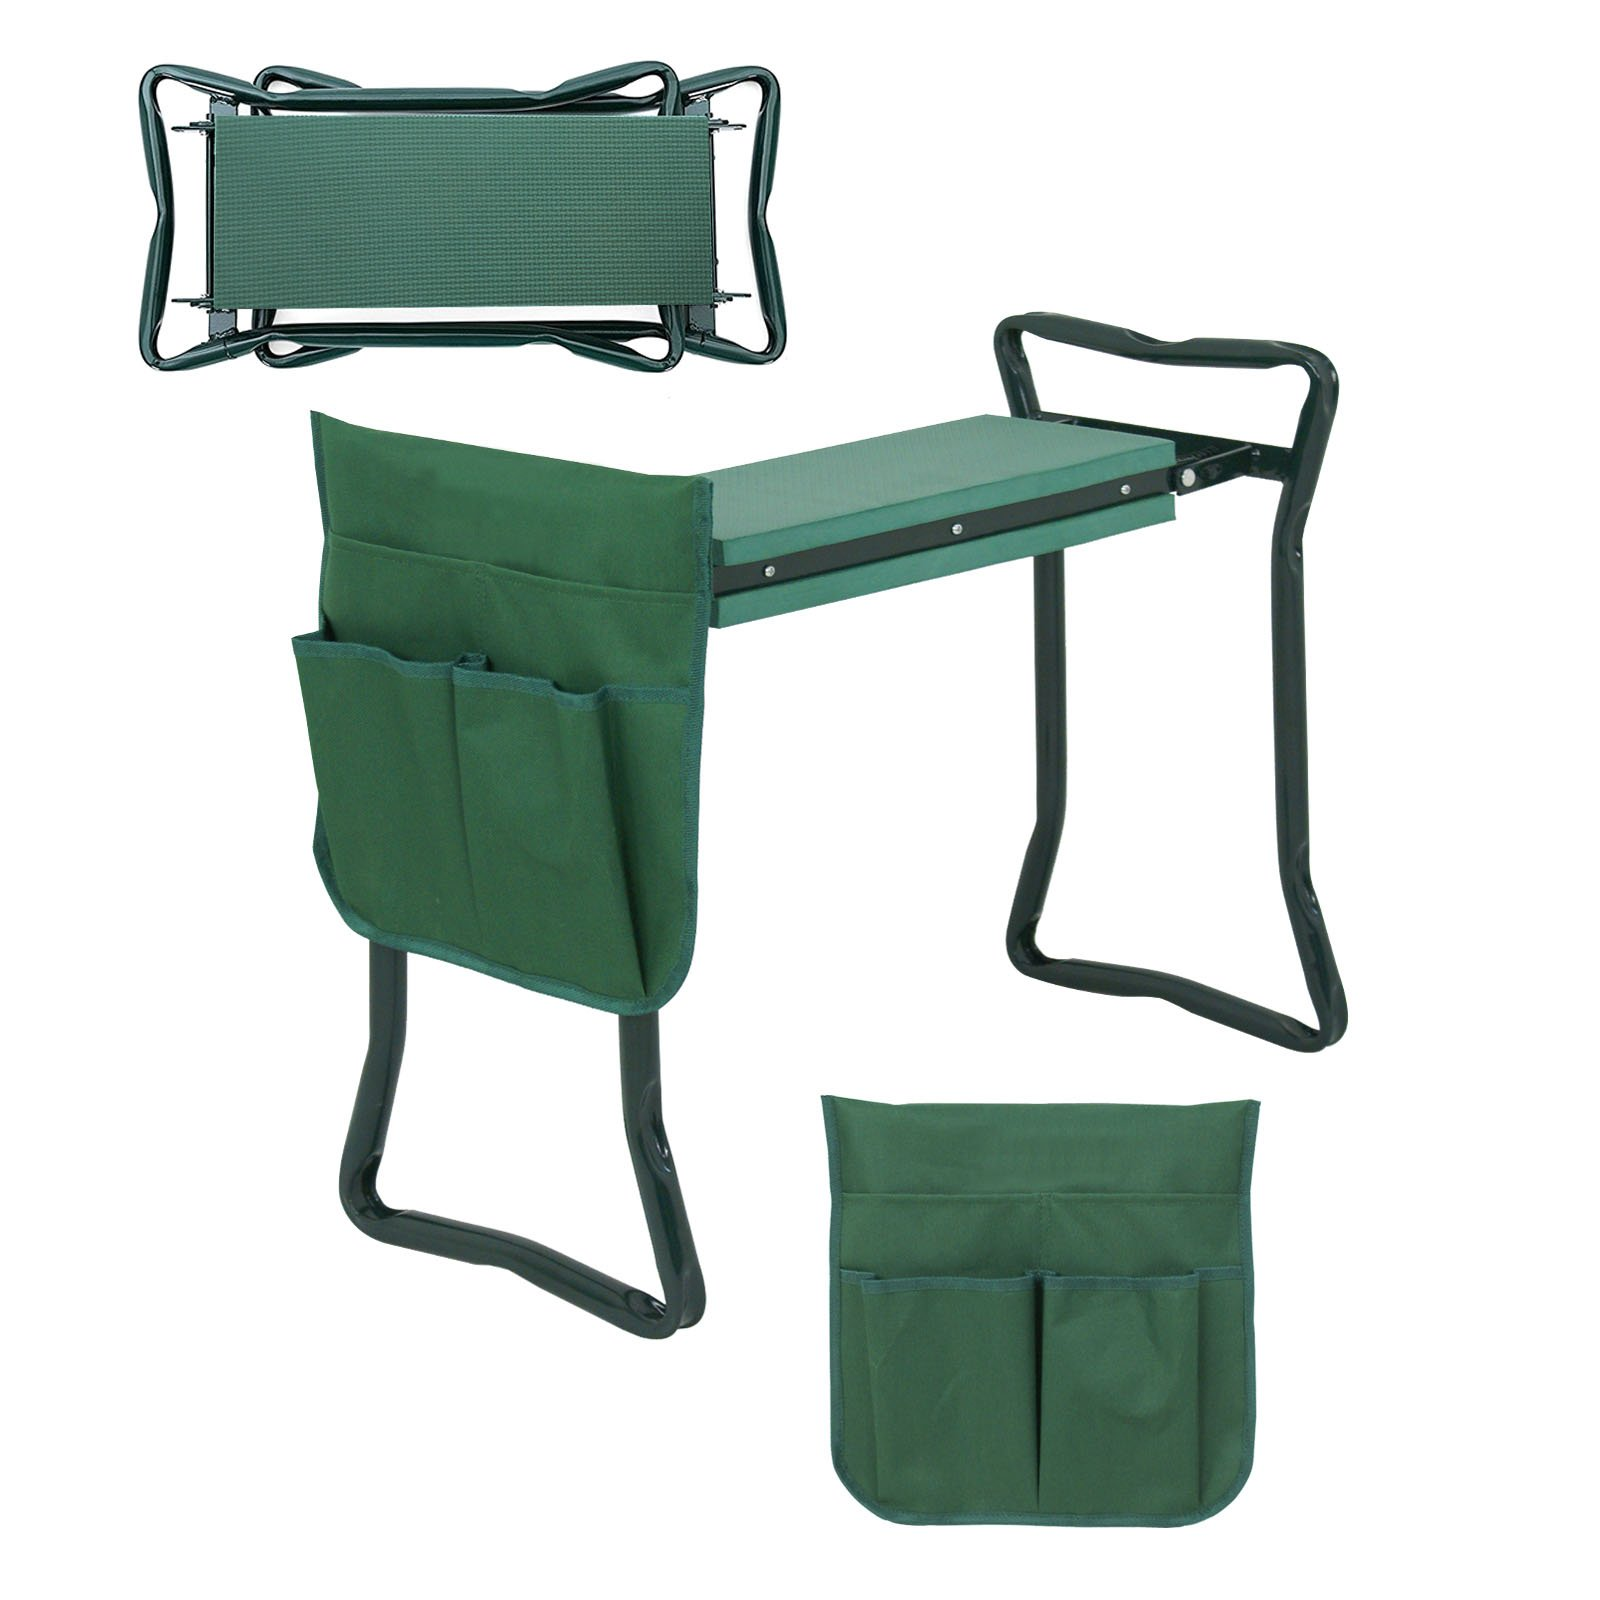 LEMY Portable Garden Kneeler Seat Multiuse EVA Foam Pad Garden Bench Foldable Garden Stool with Tool Bag Pouch (24 3/8'' x 10 7/8'' x 19 1/8'') by LEMY